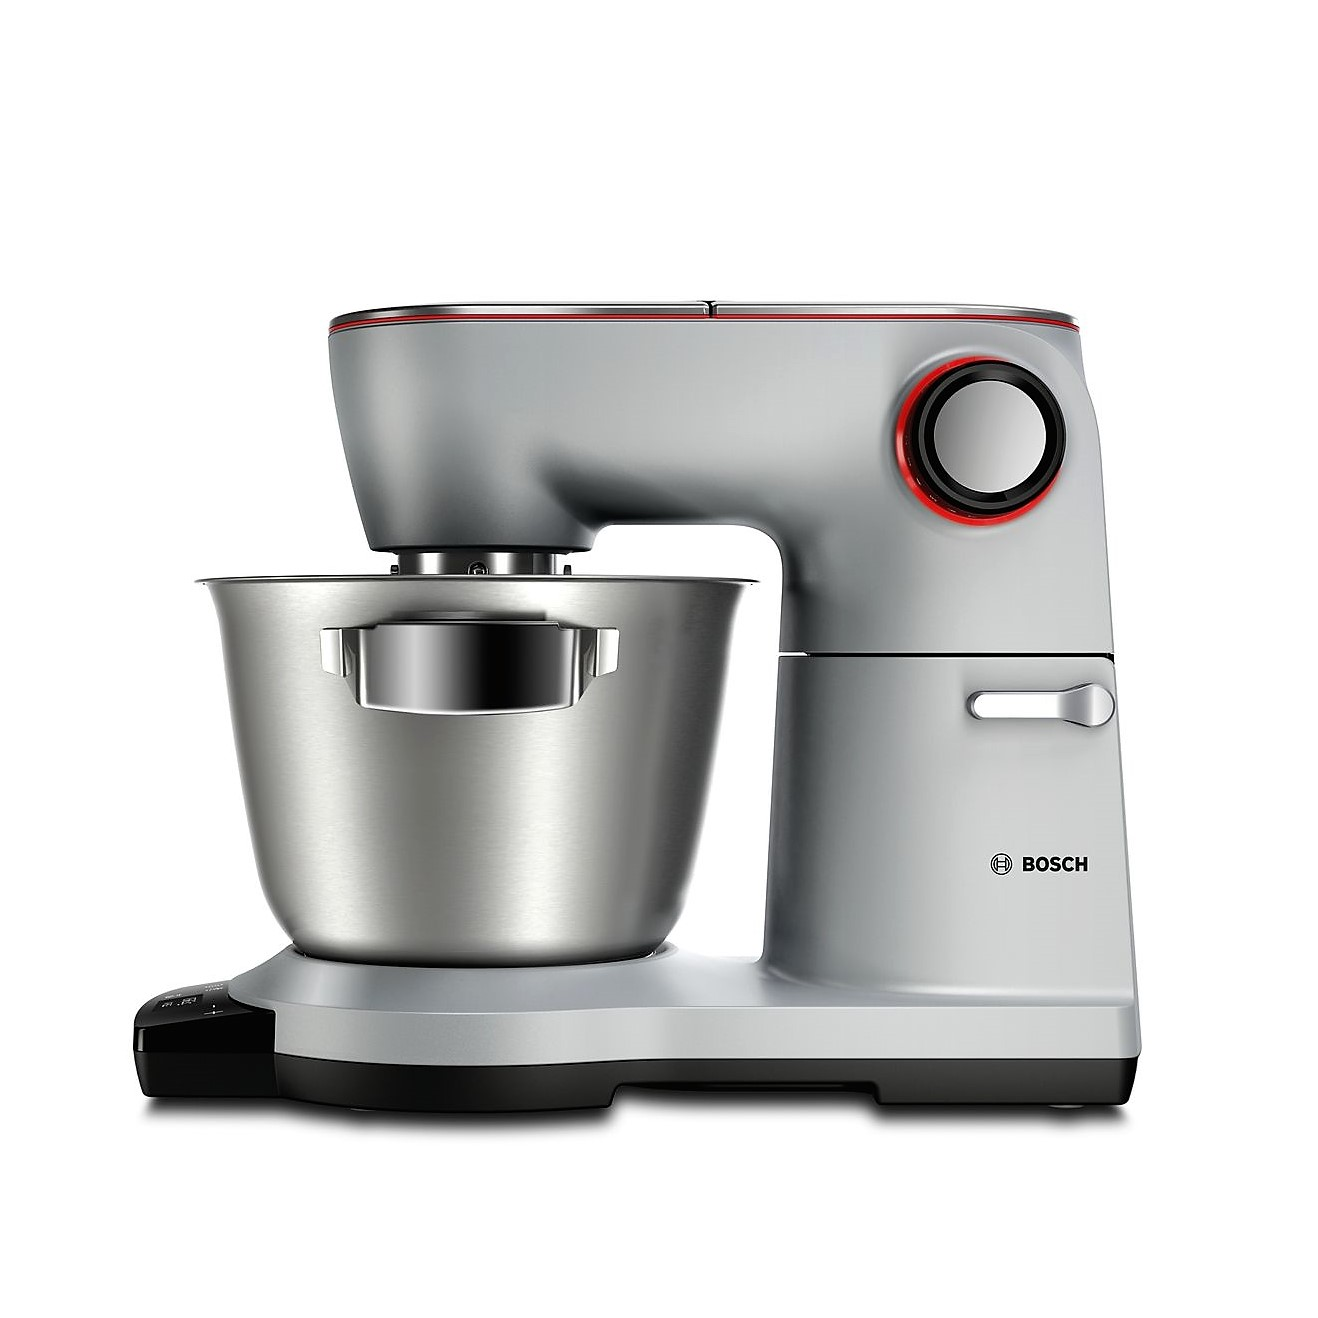 Bosch Kitchen Machine MUM9AE5S00 3 KitchenSpain